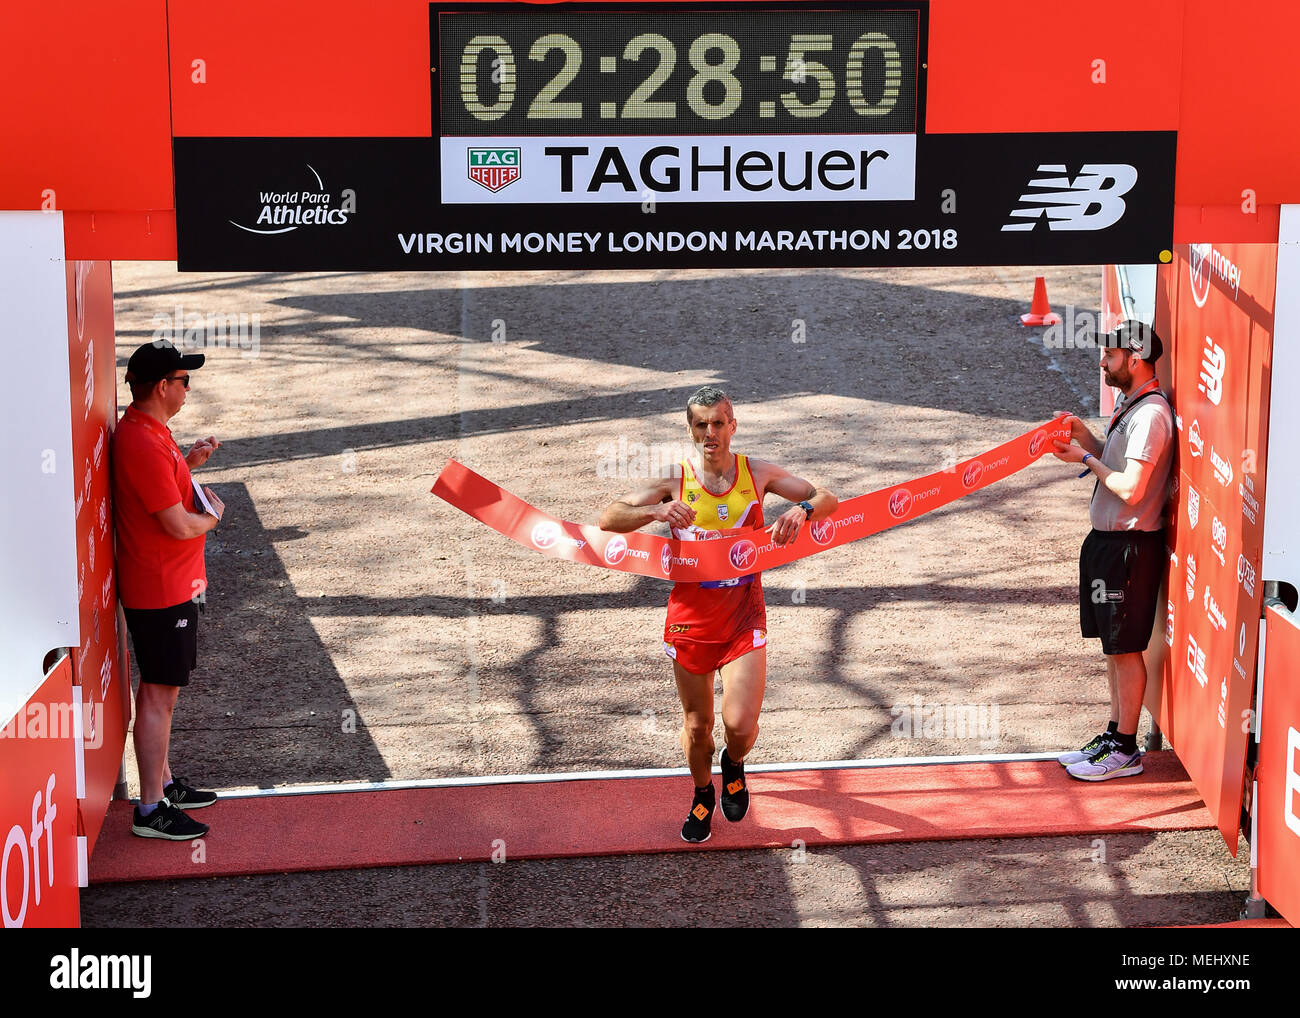 Londres, Royaume-Uni, 22 avril 2018. Alberto Suarez Laso (EPS, T1/12) a achevé le monde Para athlétisme durant la Coupe du monde Marathon 2018 Marathon de Londres Virgin Money le dimanche 22 avril 2018. Londres, Angleterre. Credit : Crédit : Wu G Taka Taka Wu/Alamy Live News Photo Stock